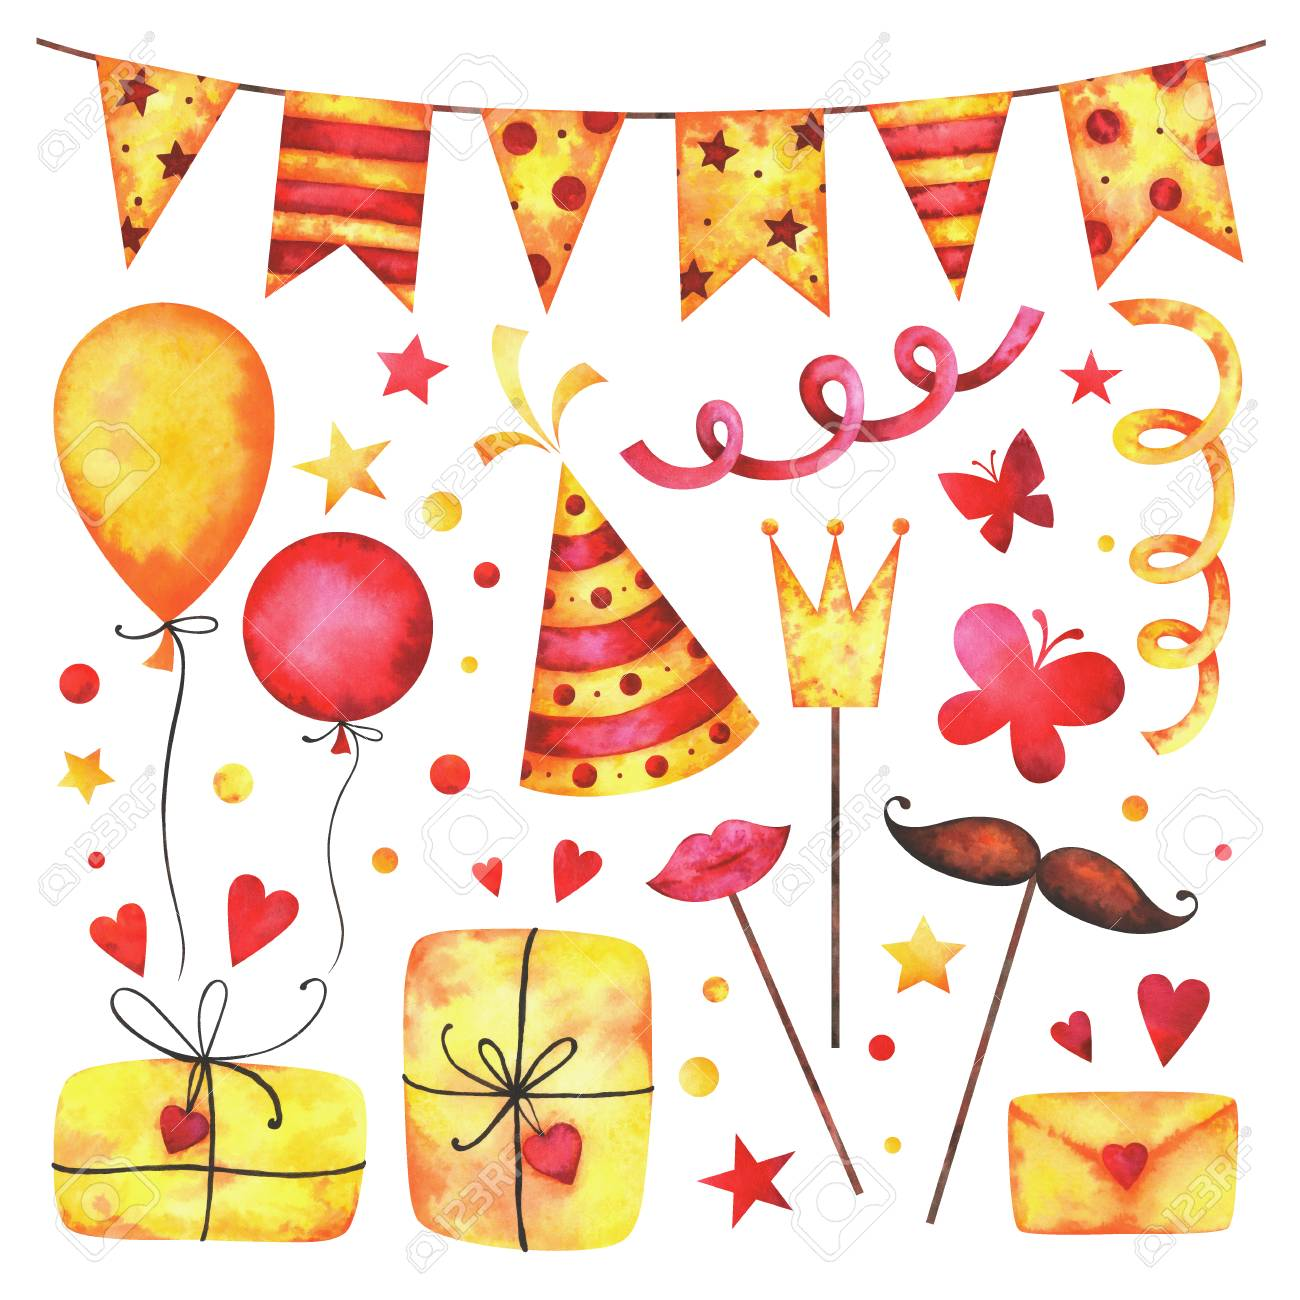 Watercolor Happy Birthday Party Clip Art Set Hand Painted Hearts Gift Boxes Festive